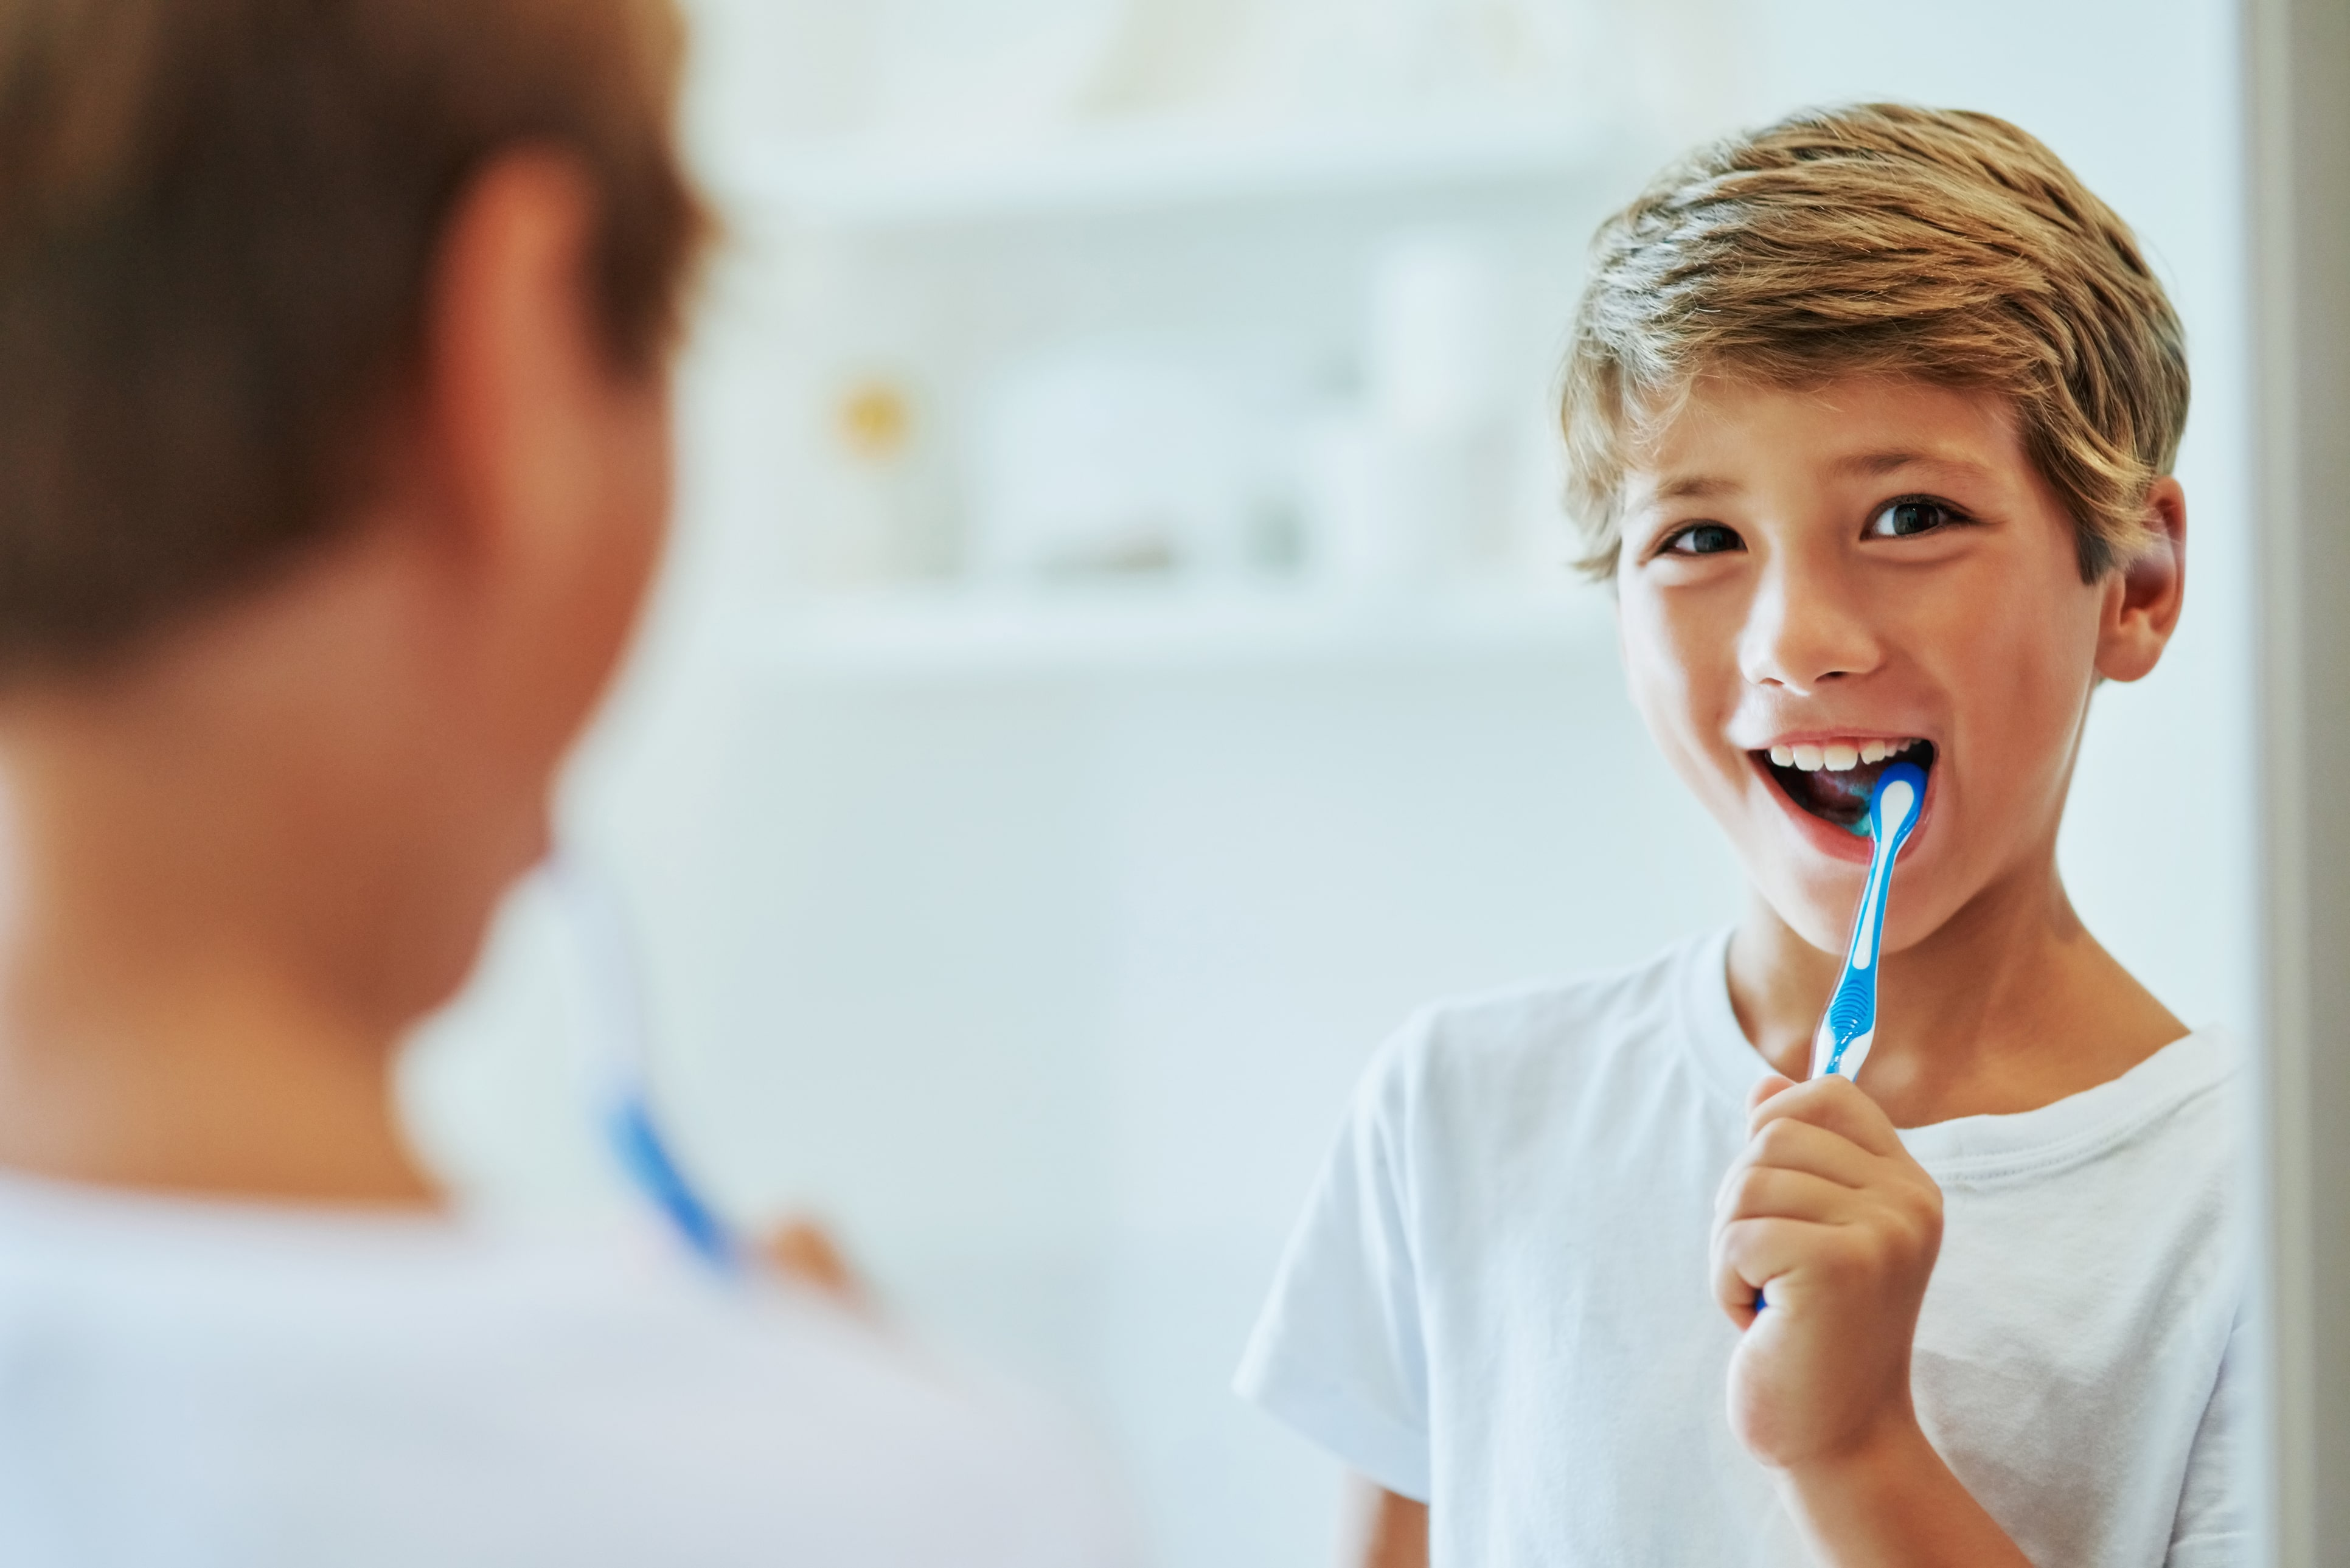 Periodontist in Orlando Central Florida Periodontics and Implantology